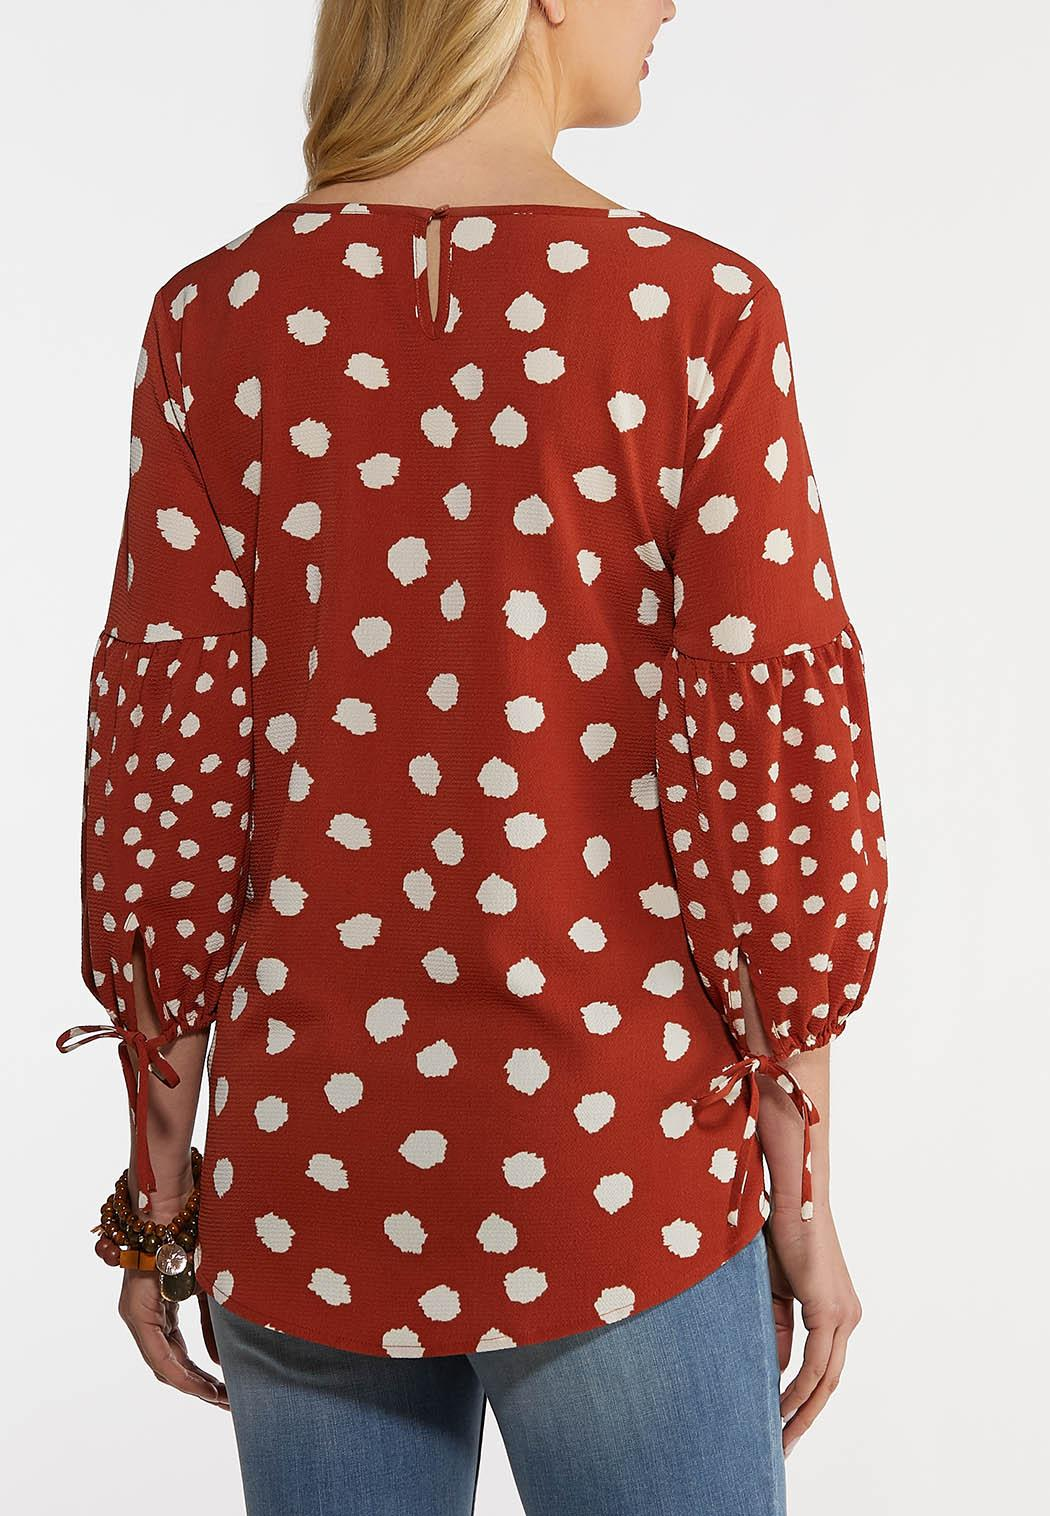 Rust Polka Dot Top (Item #44259270)